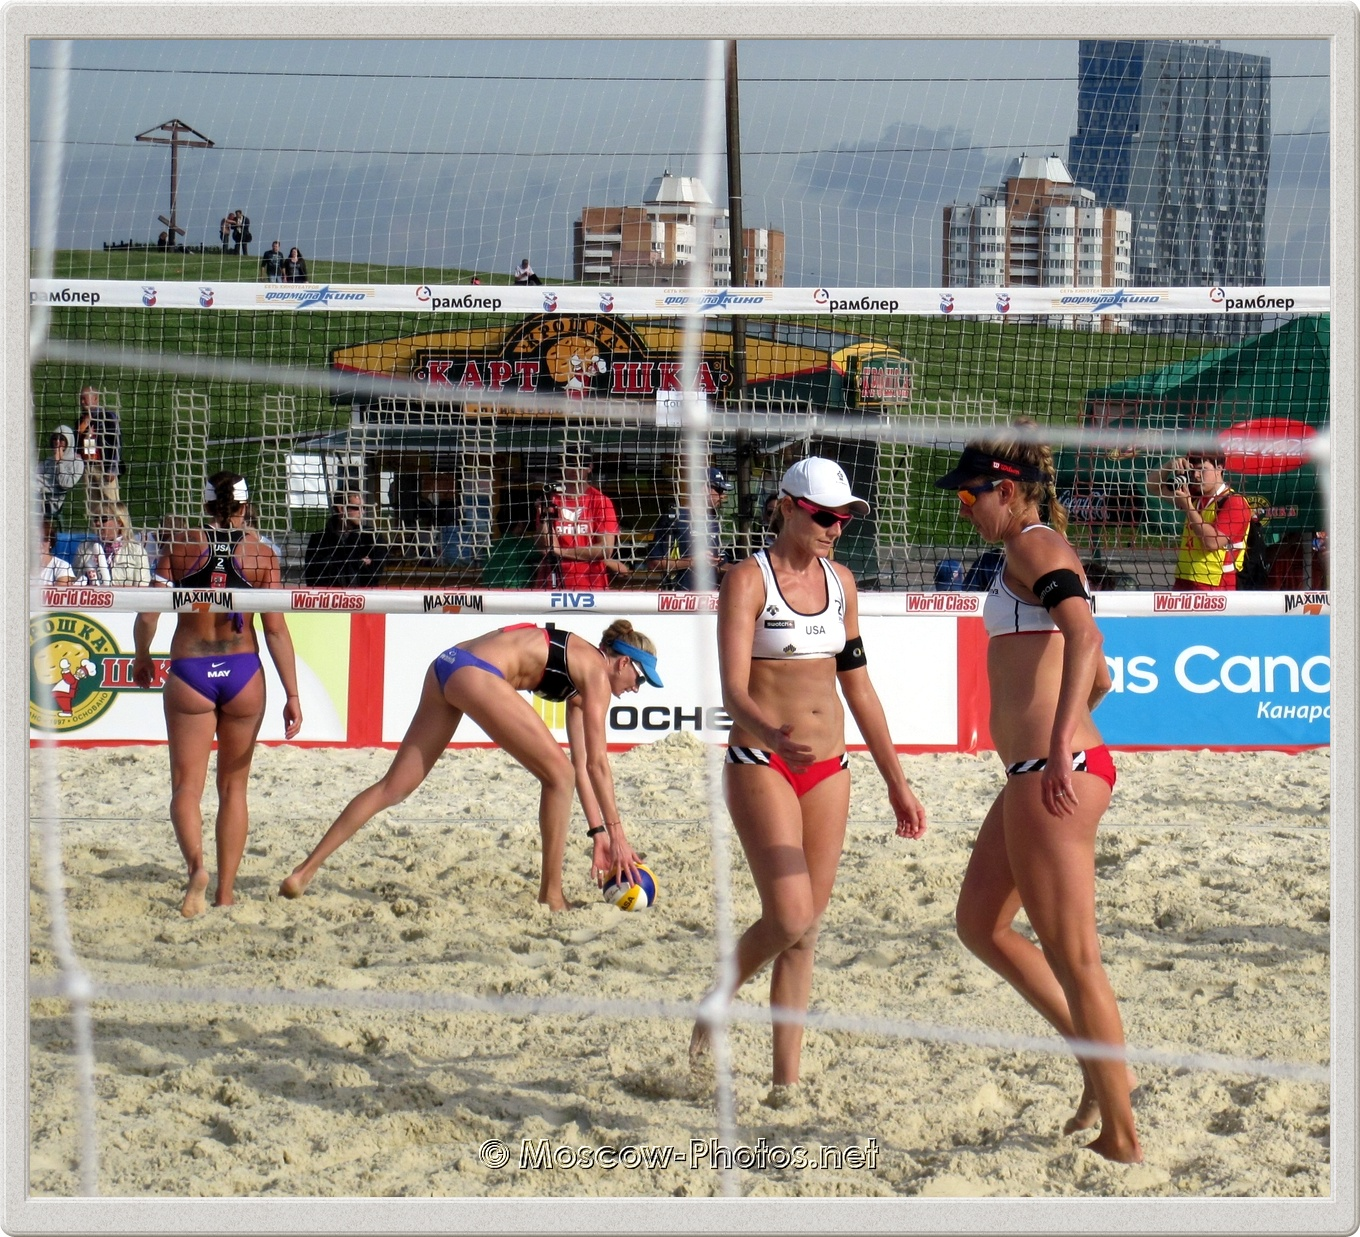 U.S. Team vs U.S. Team. Left to right -  Misty May-Treanor, Kerri Walsh, Jennifer Kessy, April Ross